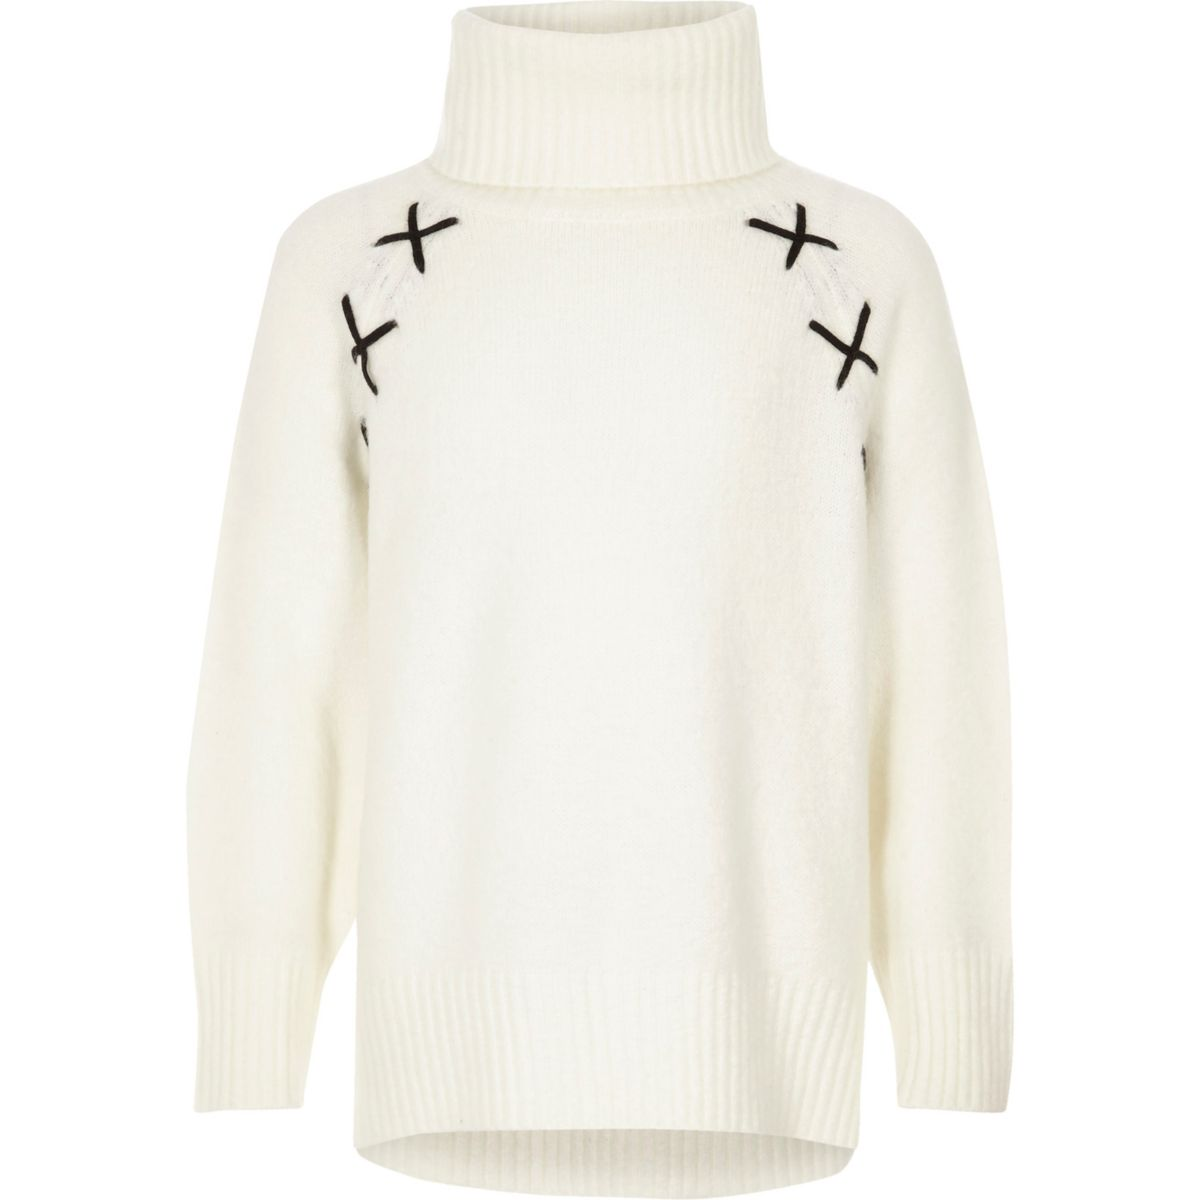 Girls cream roll neck cross detail sweater